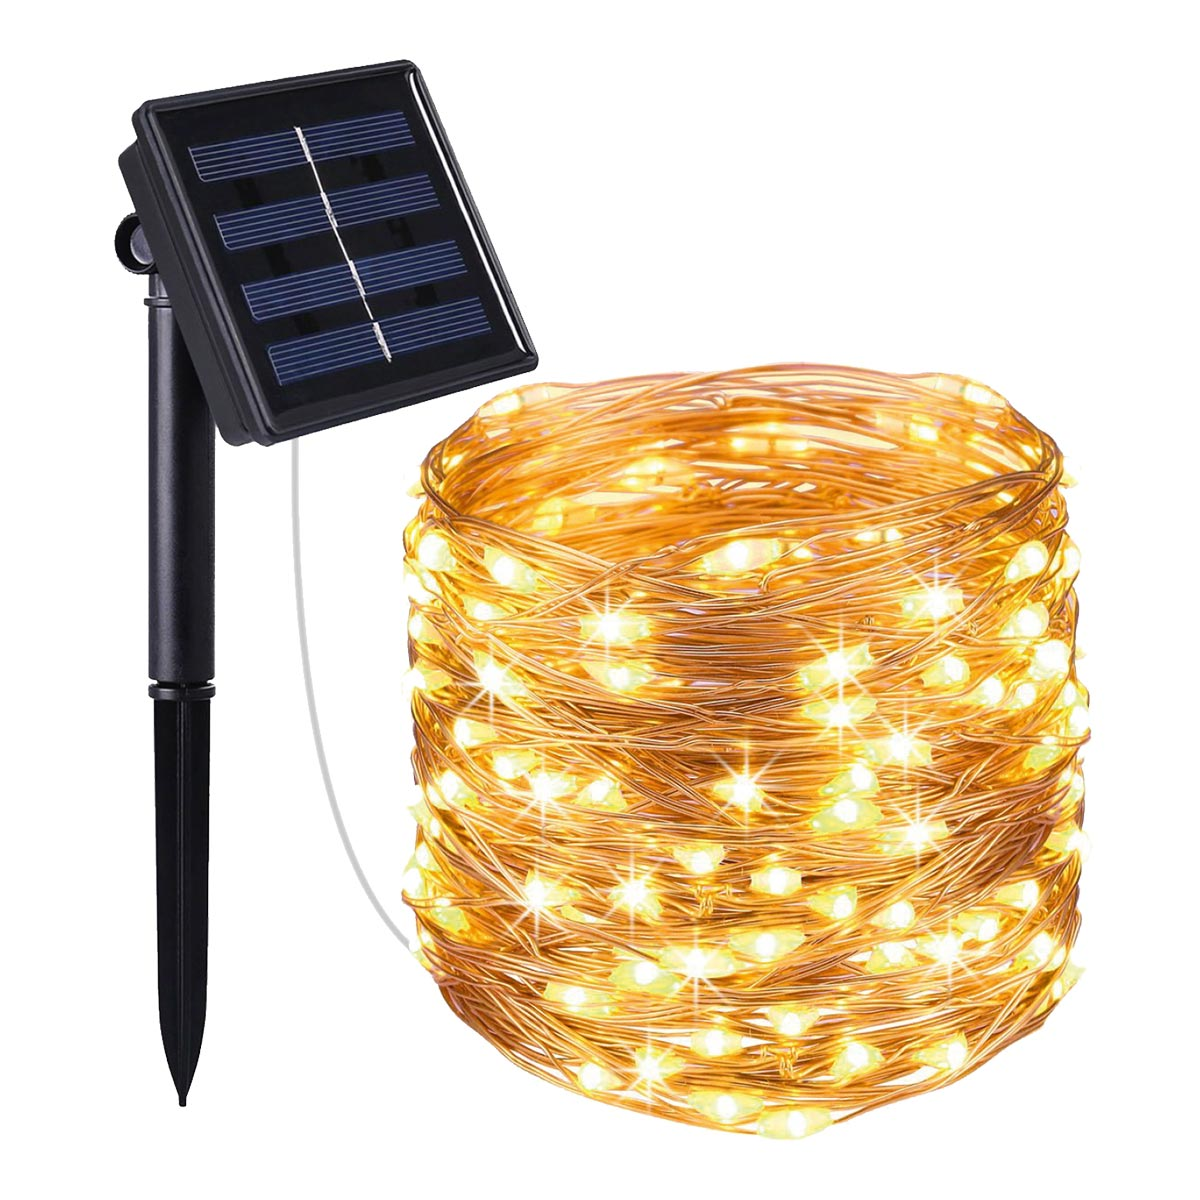 Guirlande lumineuse solaire en cuivre 200 micro LED blanc chaud SKINNY SOLAR 21.50m 8 modes - REDDECO.com